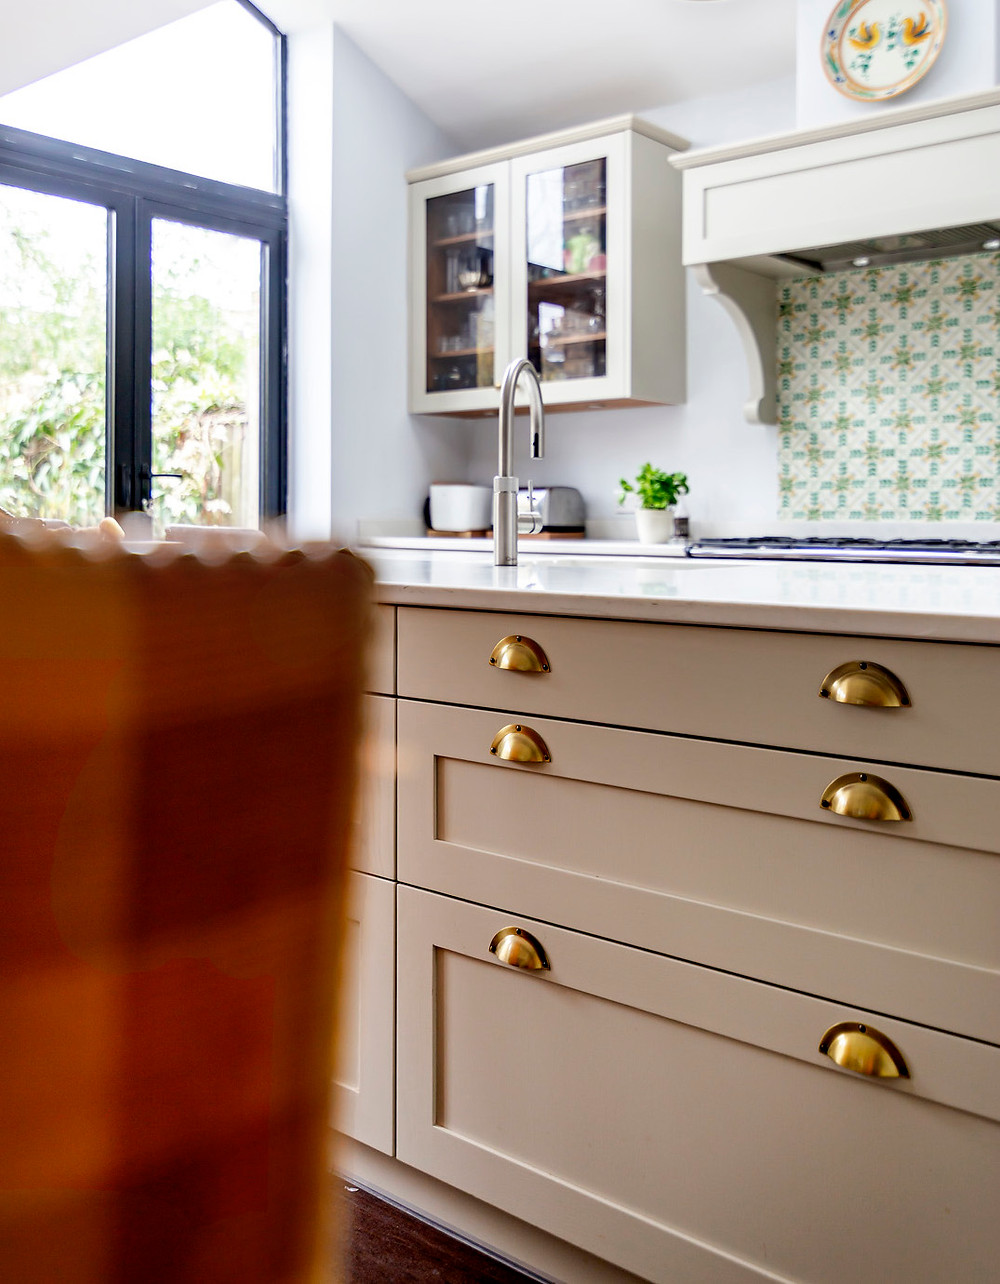 Bespoke cutlery drawer and pan drawers on dining side of kitchen island